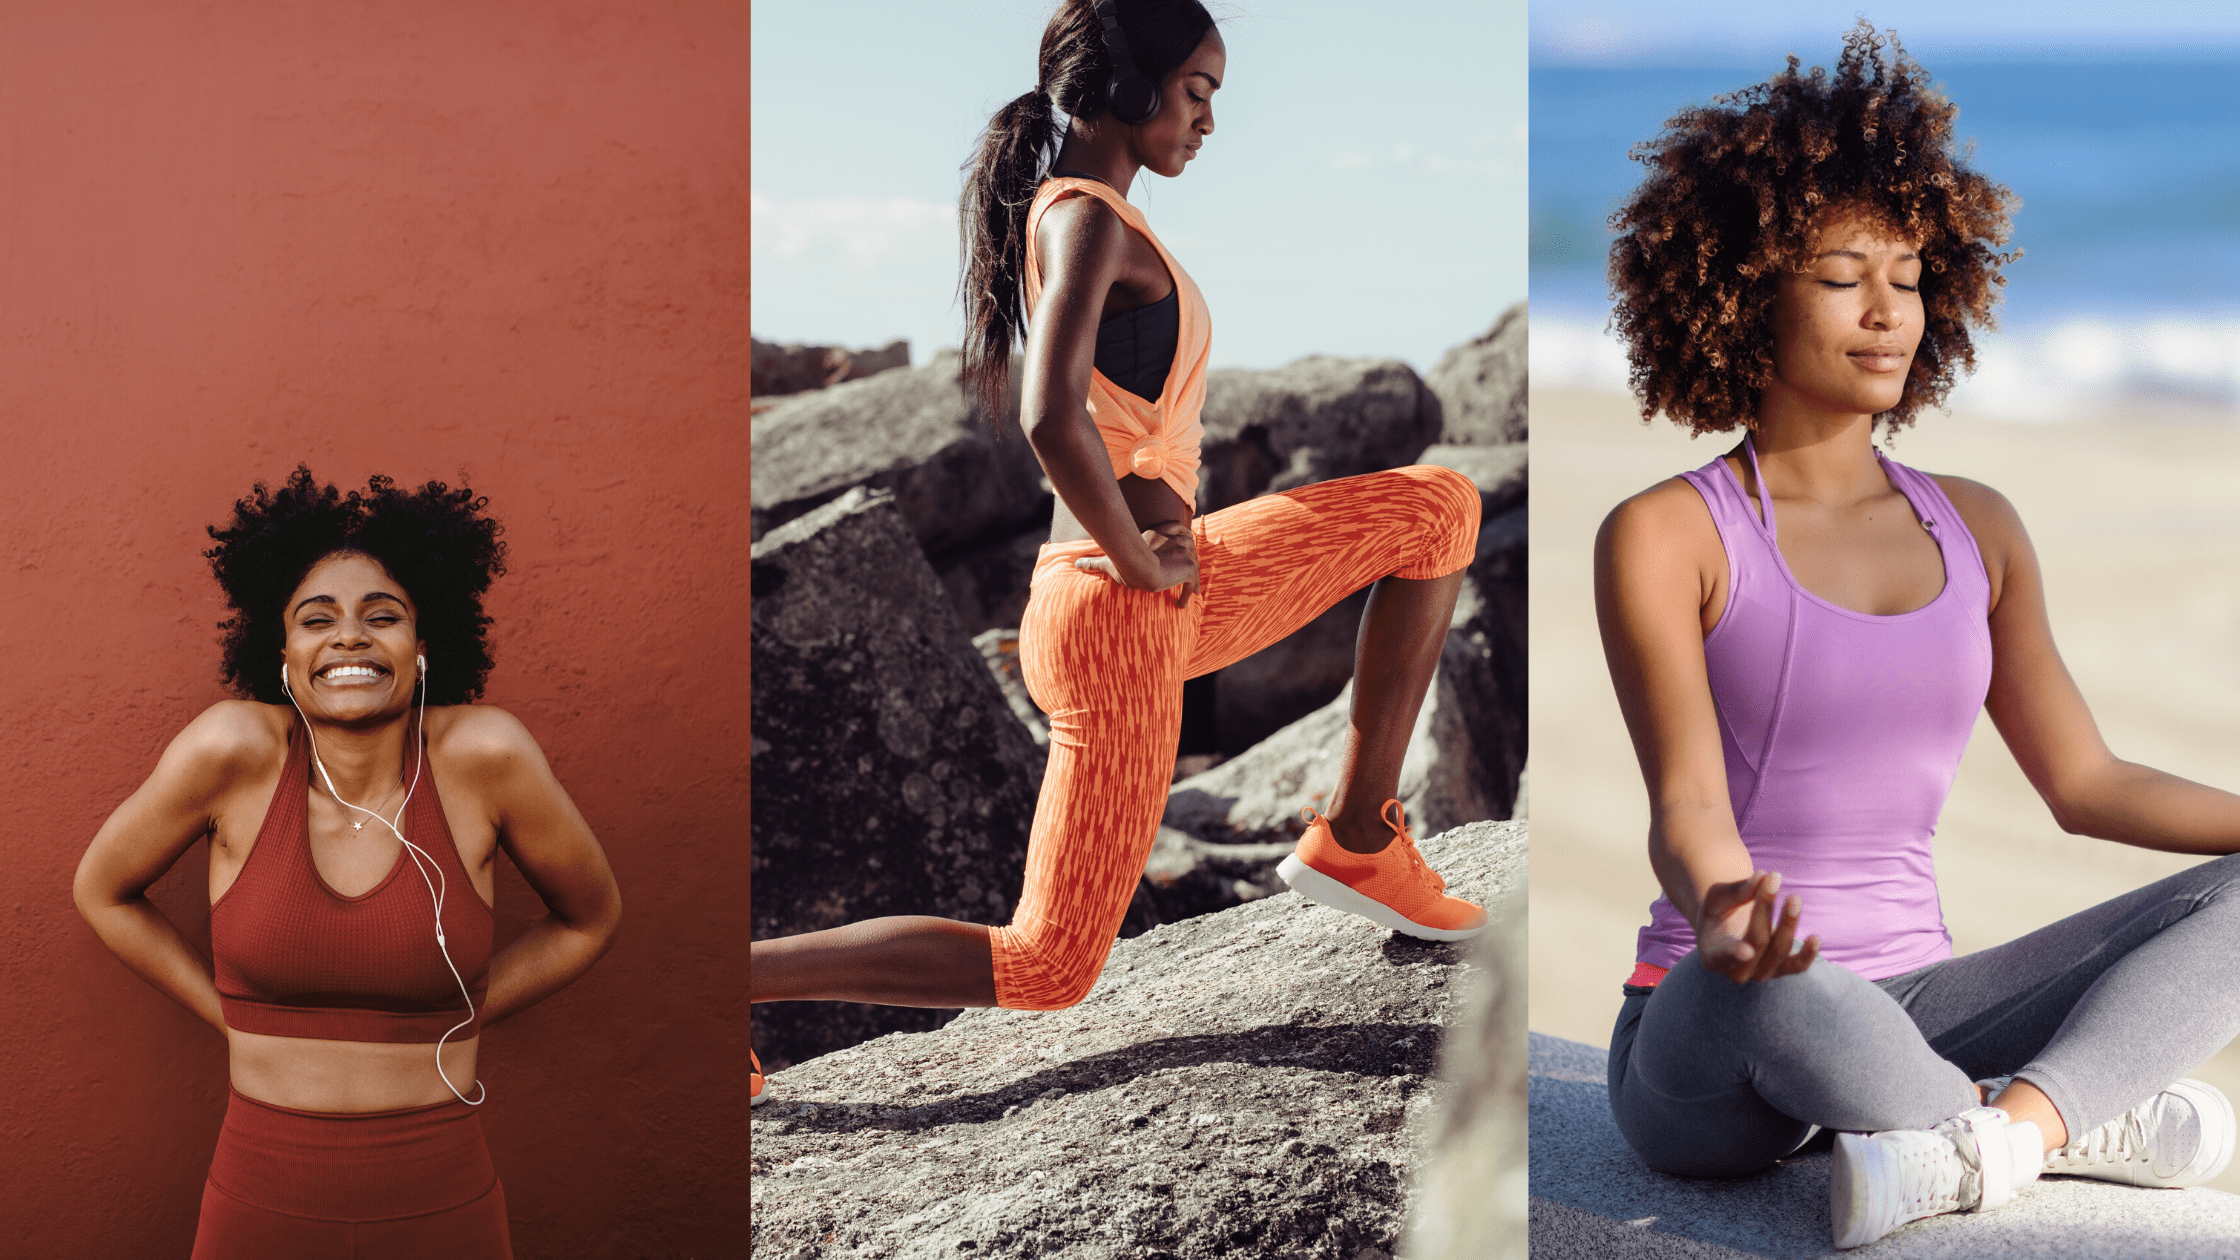 The Urgent Need For A Wellness Industry Designed For & By Black Women